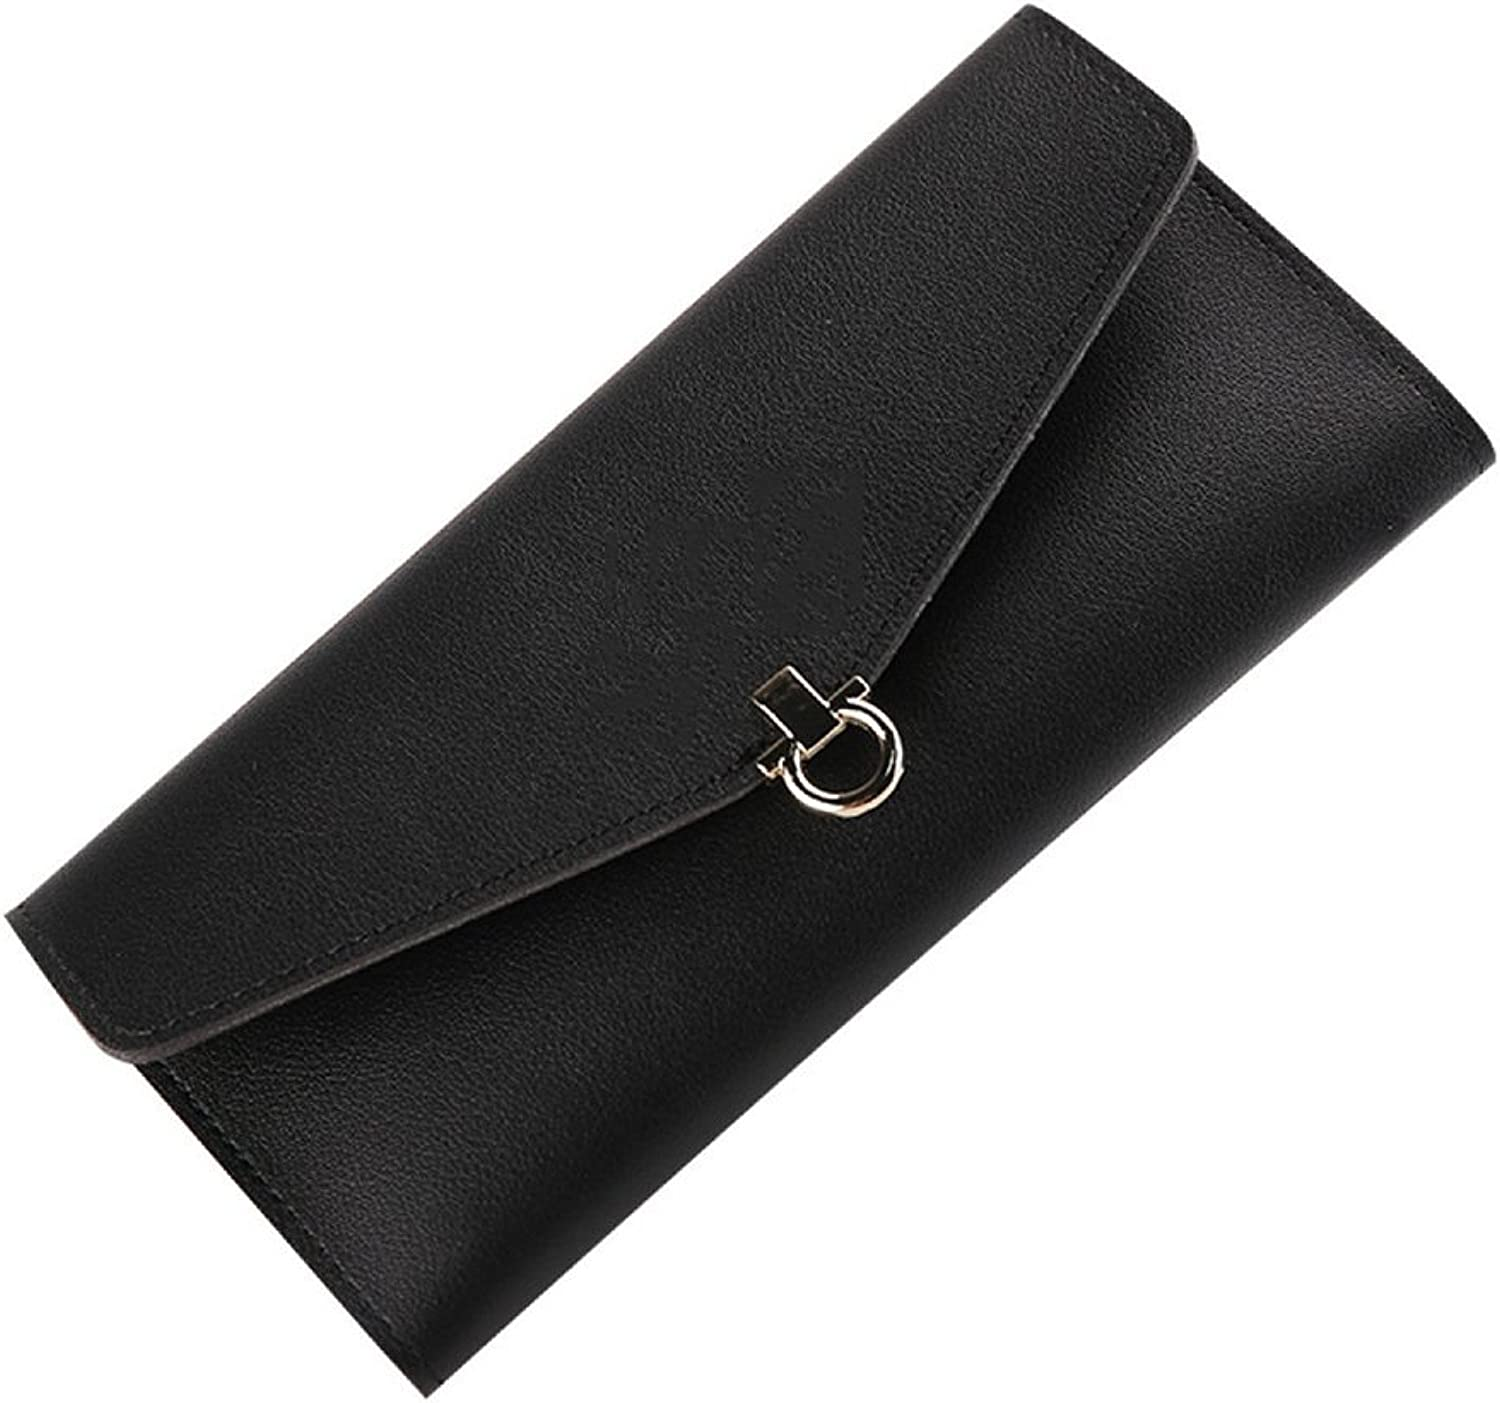 Ms. Wallet by ZAIYI The New Cute Long Wallet Lady Three Percent Off Wallet Simple Fashion HighCapacity Wallet,C